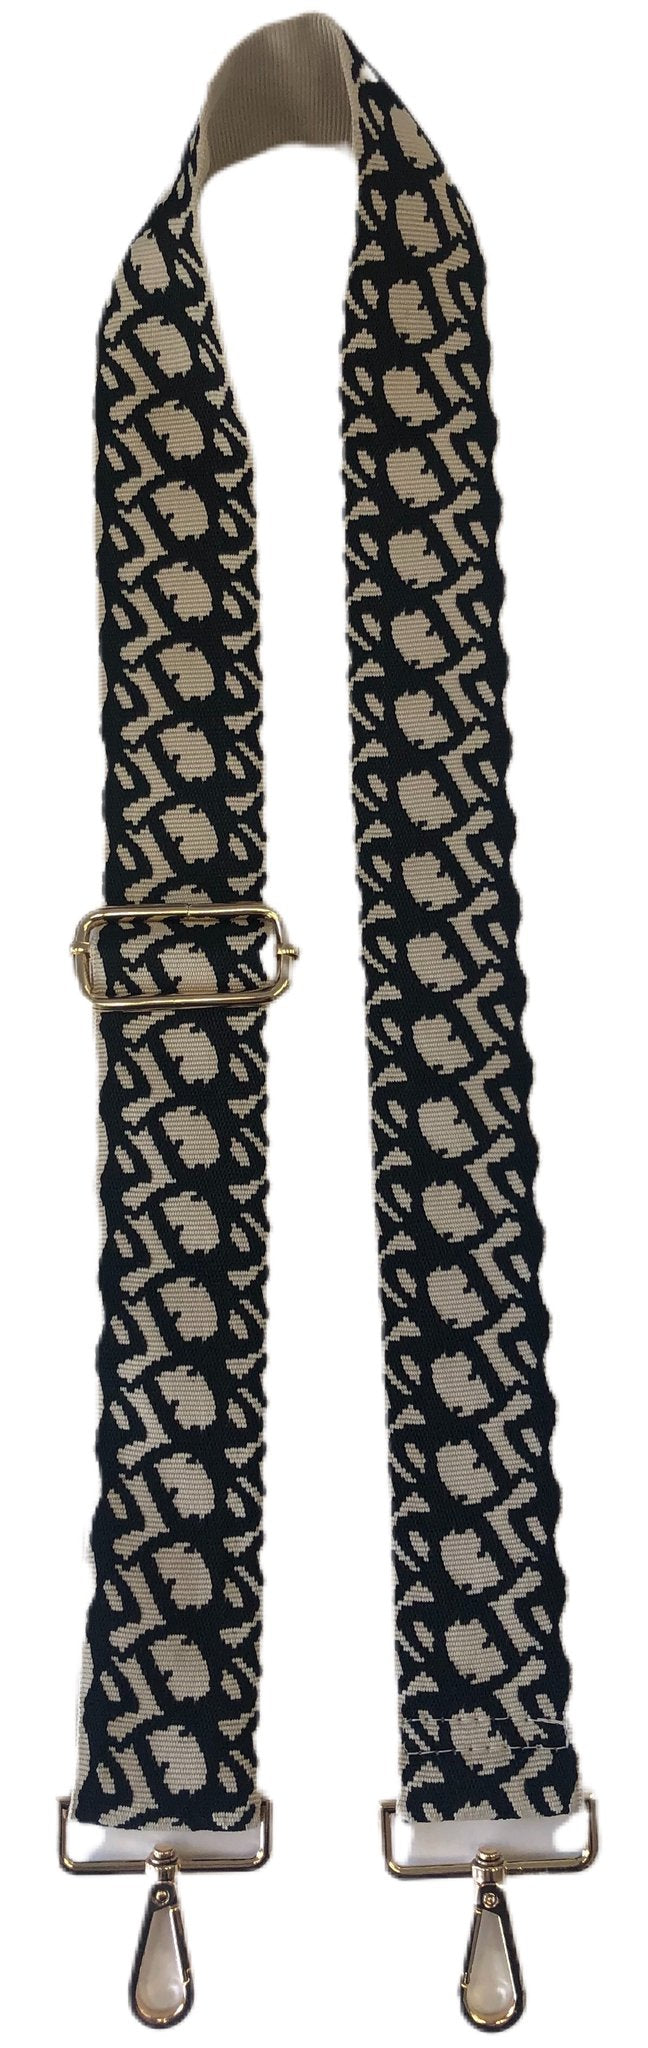 "Ahdorned - Cream w/Black Print 2"" Strap"